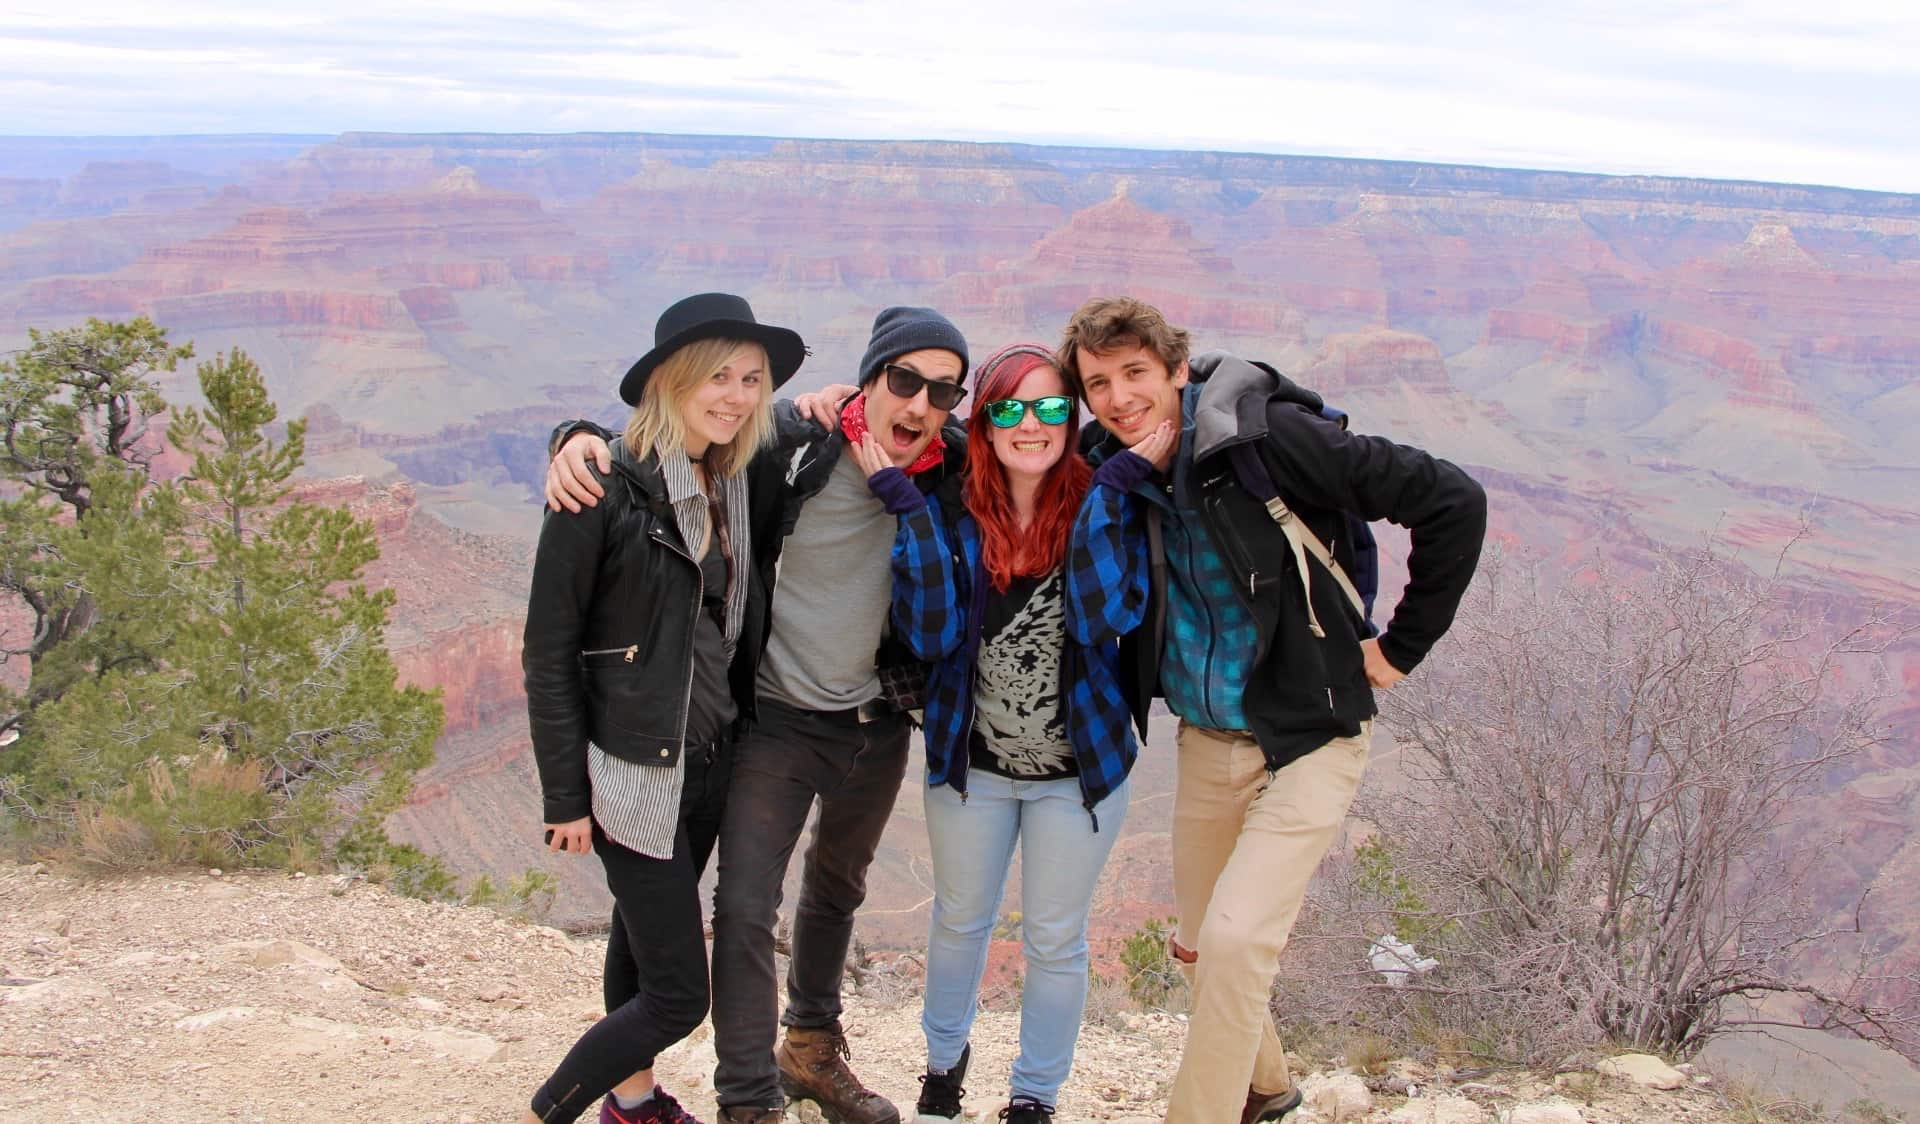 A group of travelers posing for a photo at the Grand Canyon in the USA